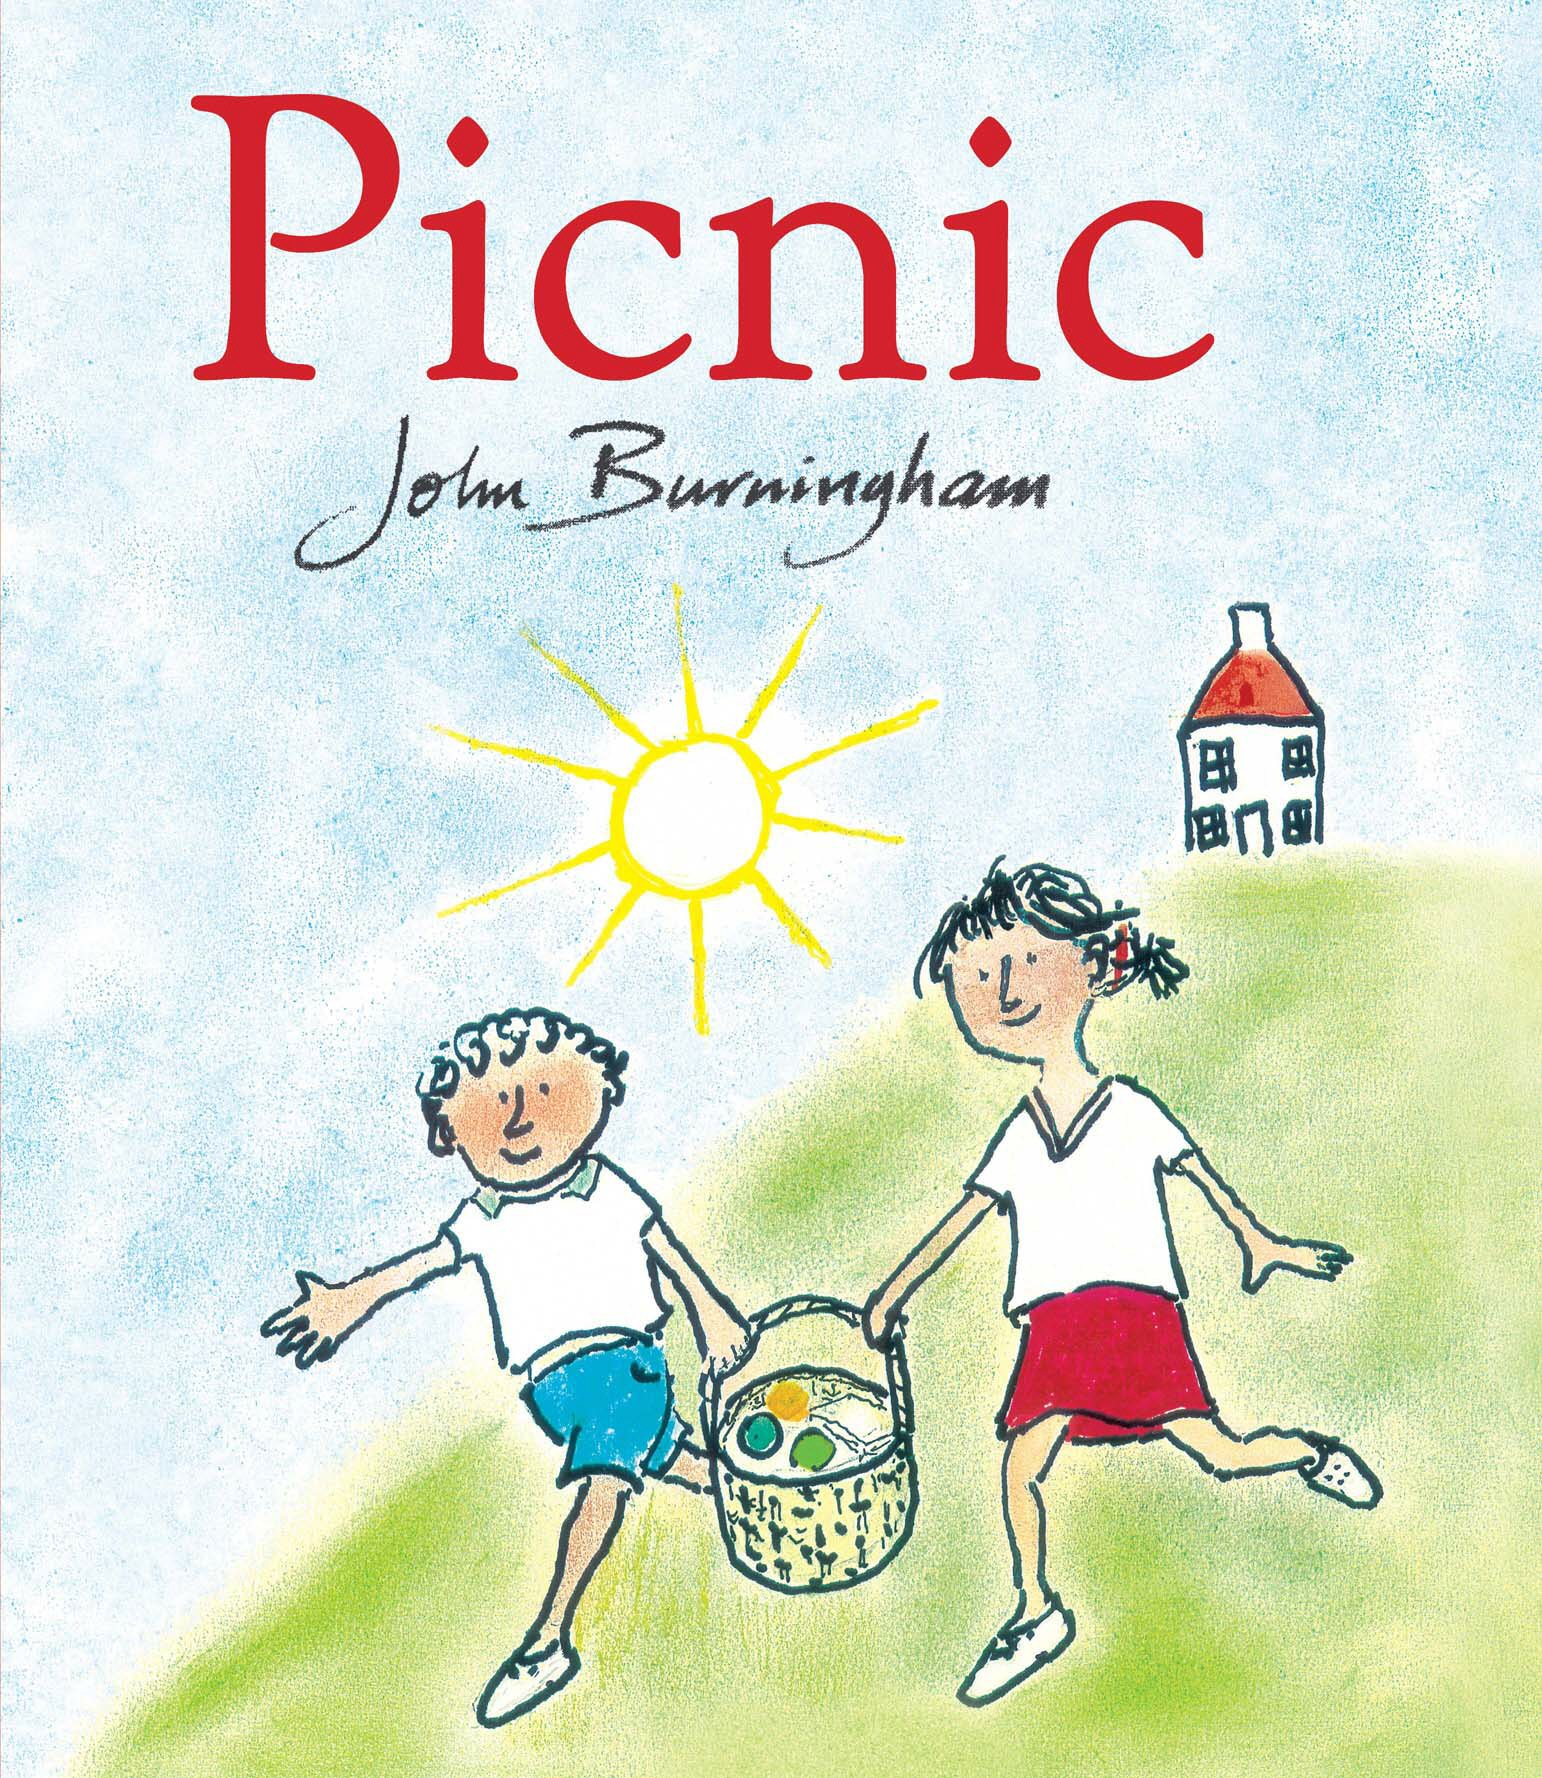 Image result for picnic john burningham